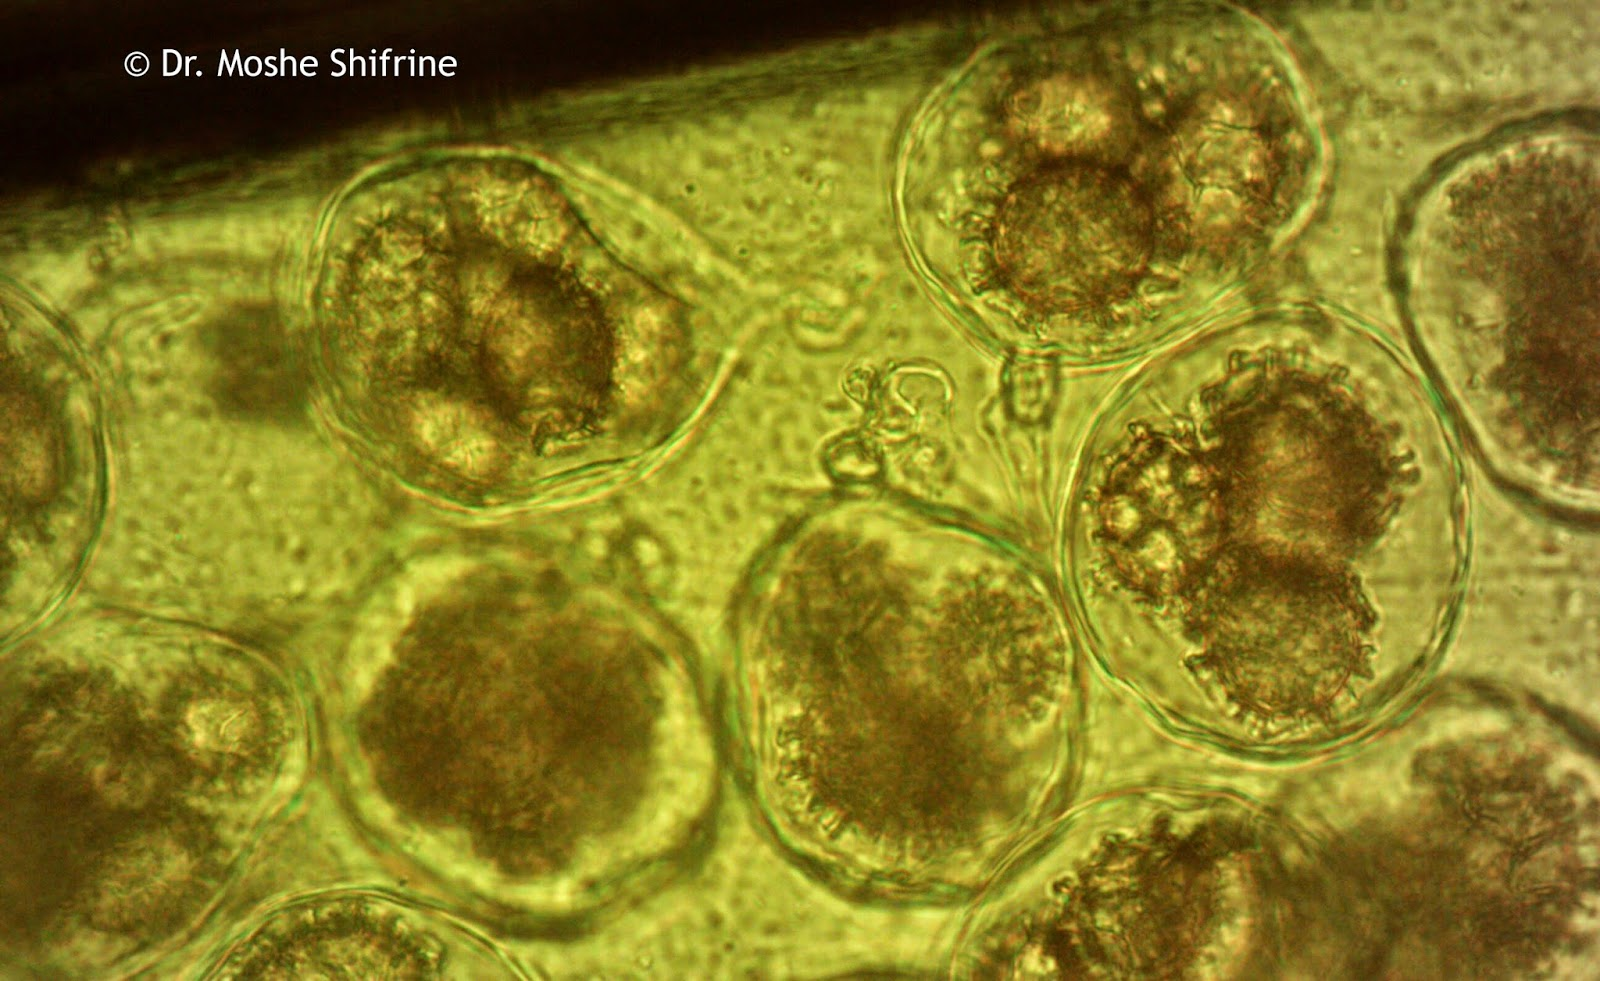 Funghi spore, 1000x, under biological microscope.